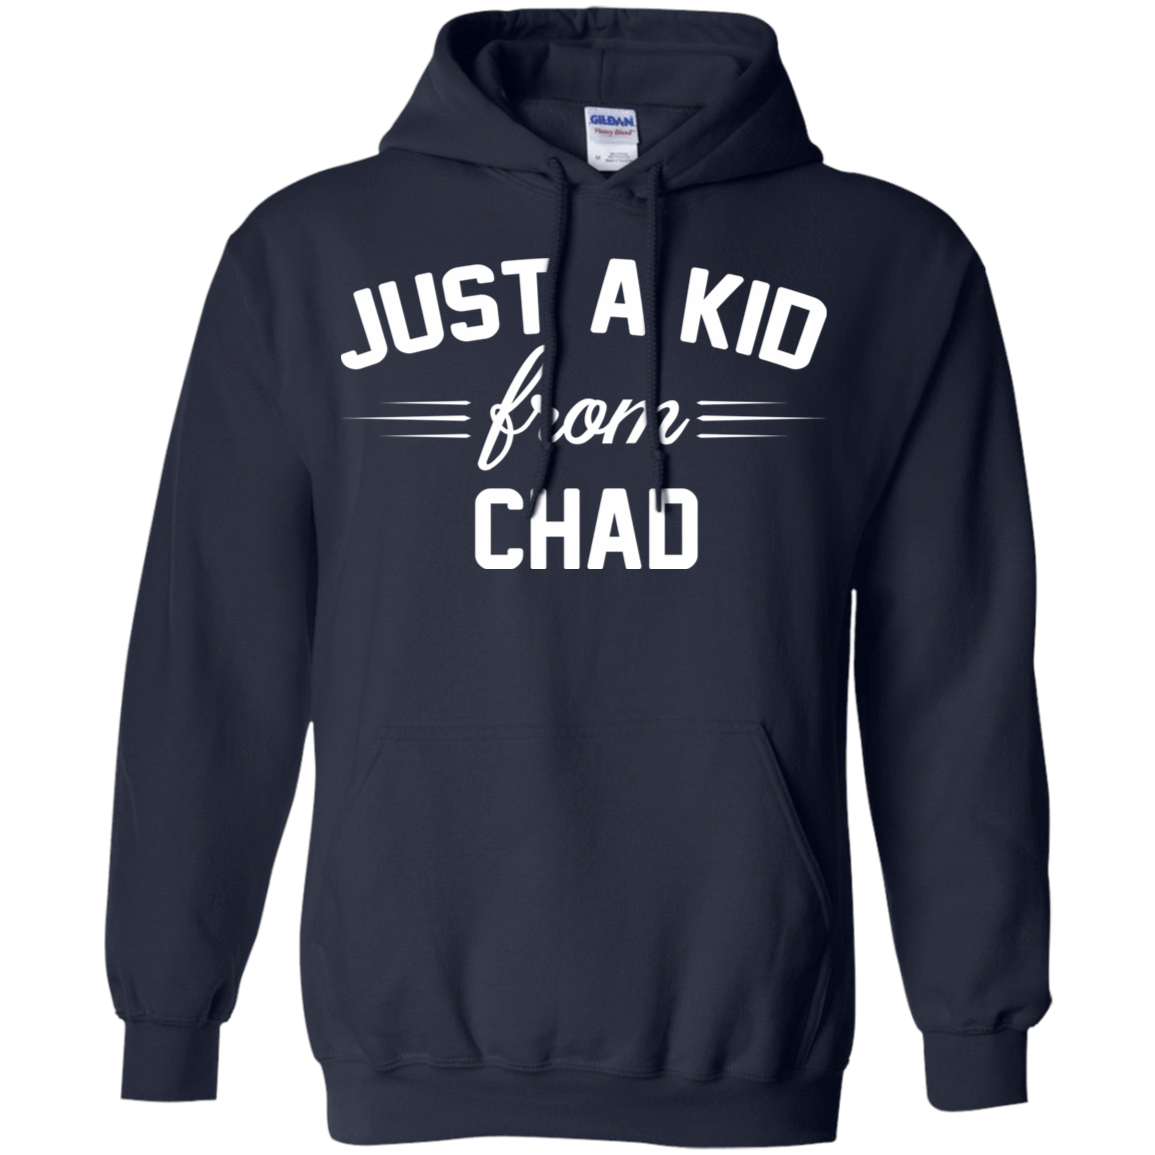 Just a Kid Store | Chad T-Shirts, Hoodie, Tank 541-4742-72092766-23135 - Tee Ript